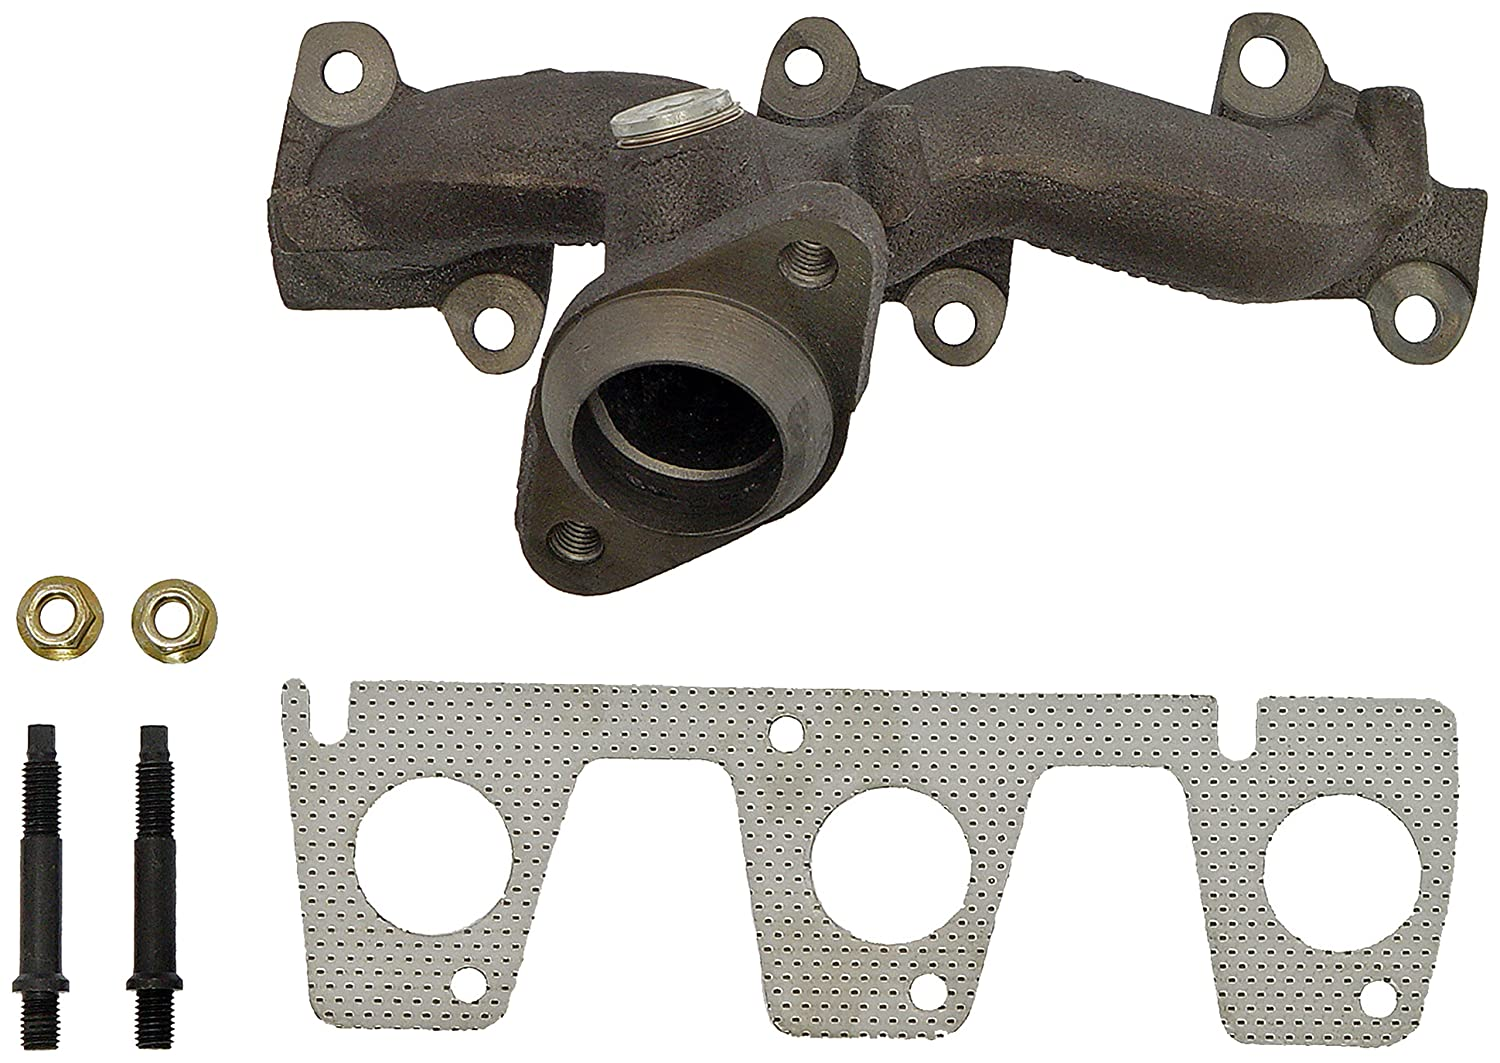 Dorman 674-362 Rear Exhaust Manifold Kit For Select Ford Mercury Models